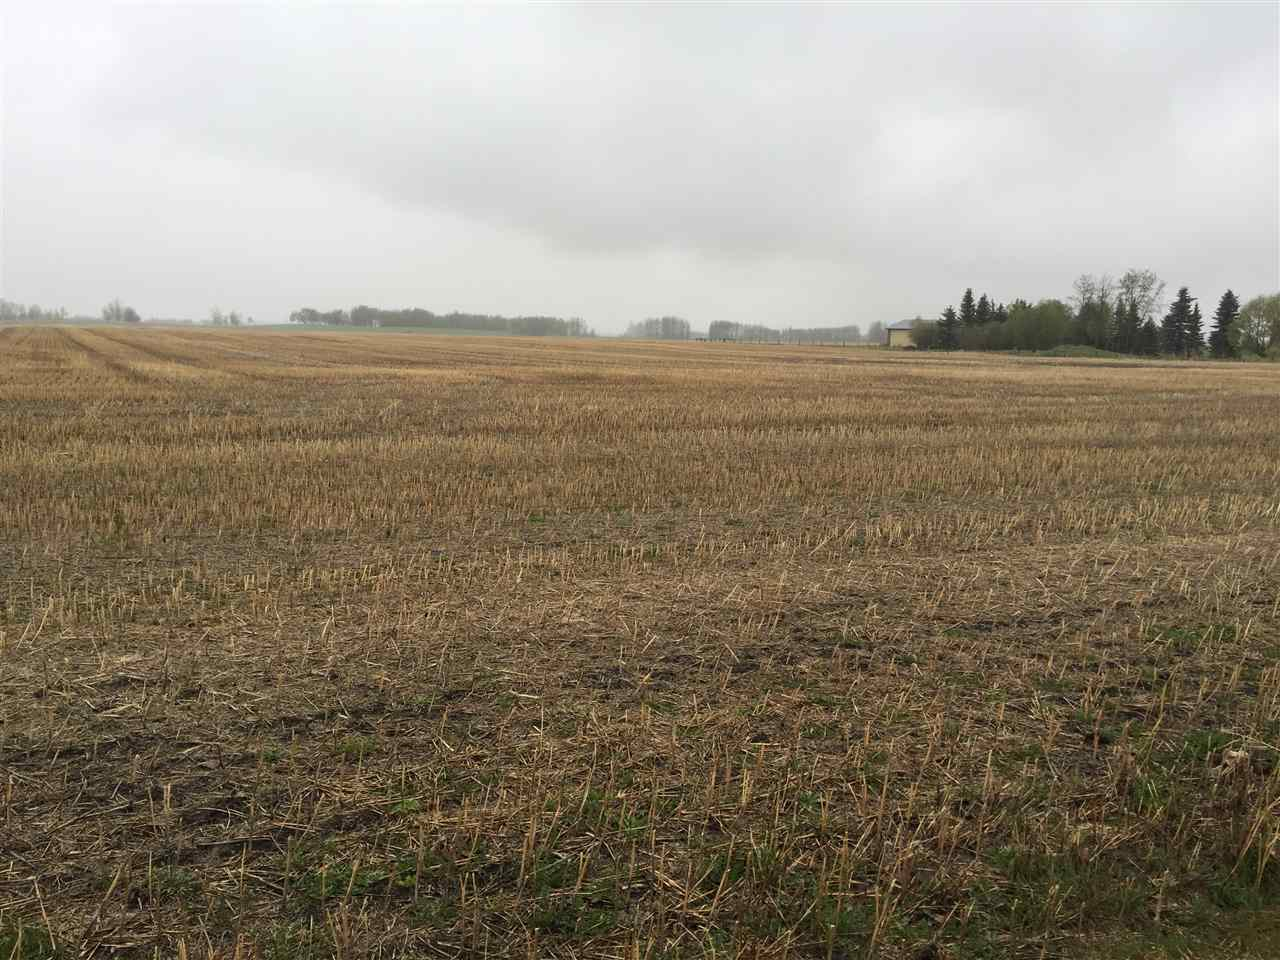 Main Photo: 60314 Rge Rd 252: Rural Westlock County Rural Land/Vacant Lot for sale : MLS® # E4057841